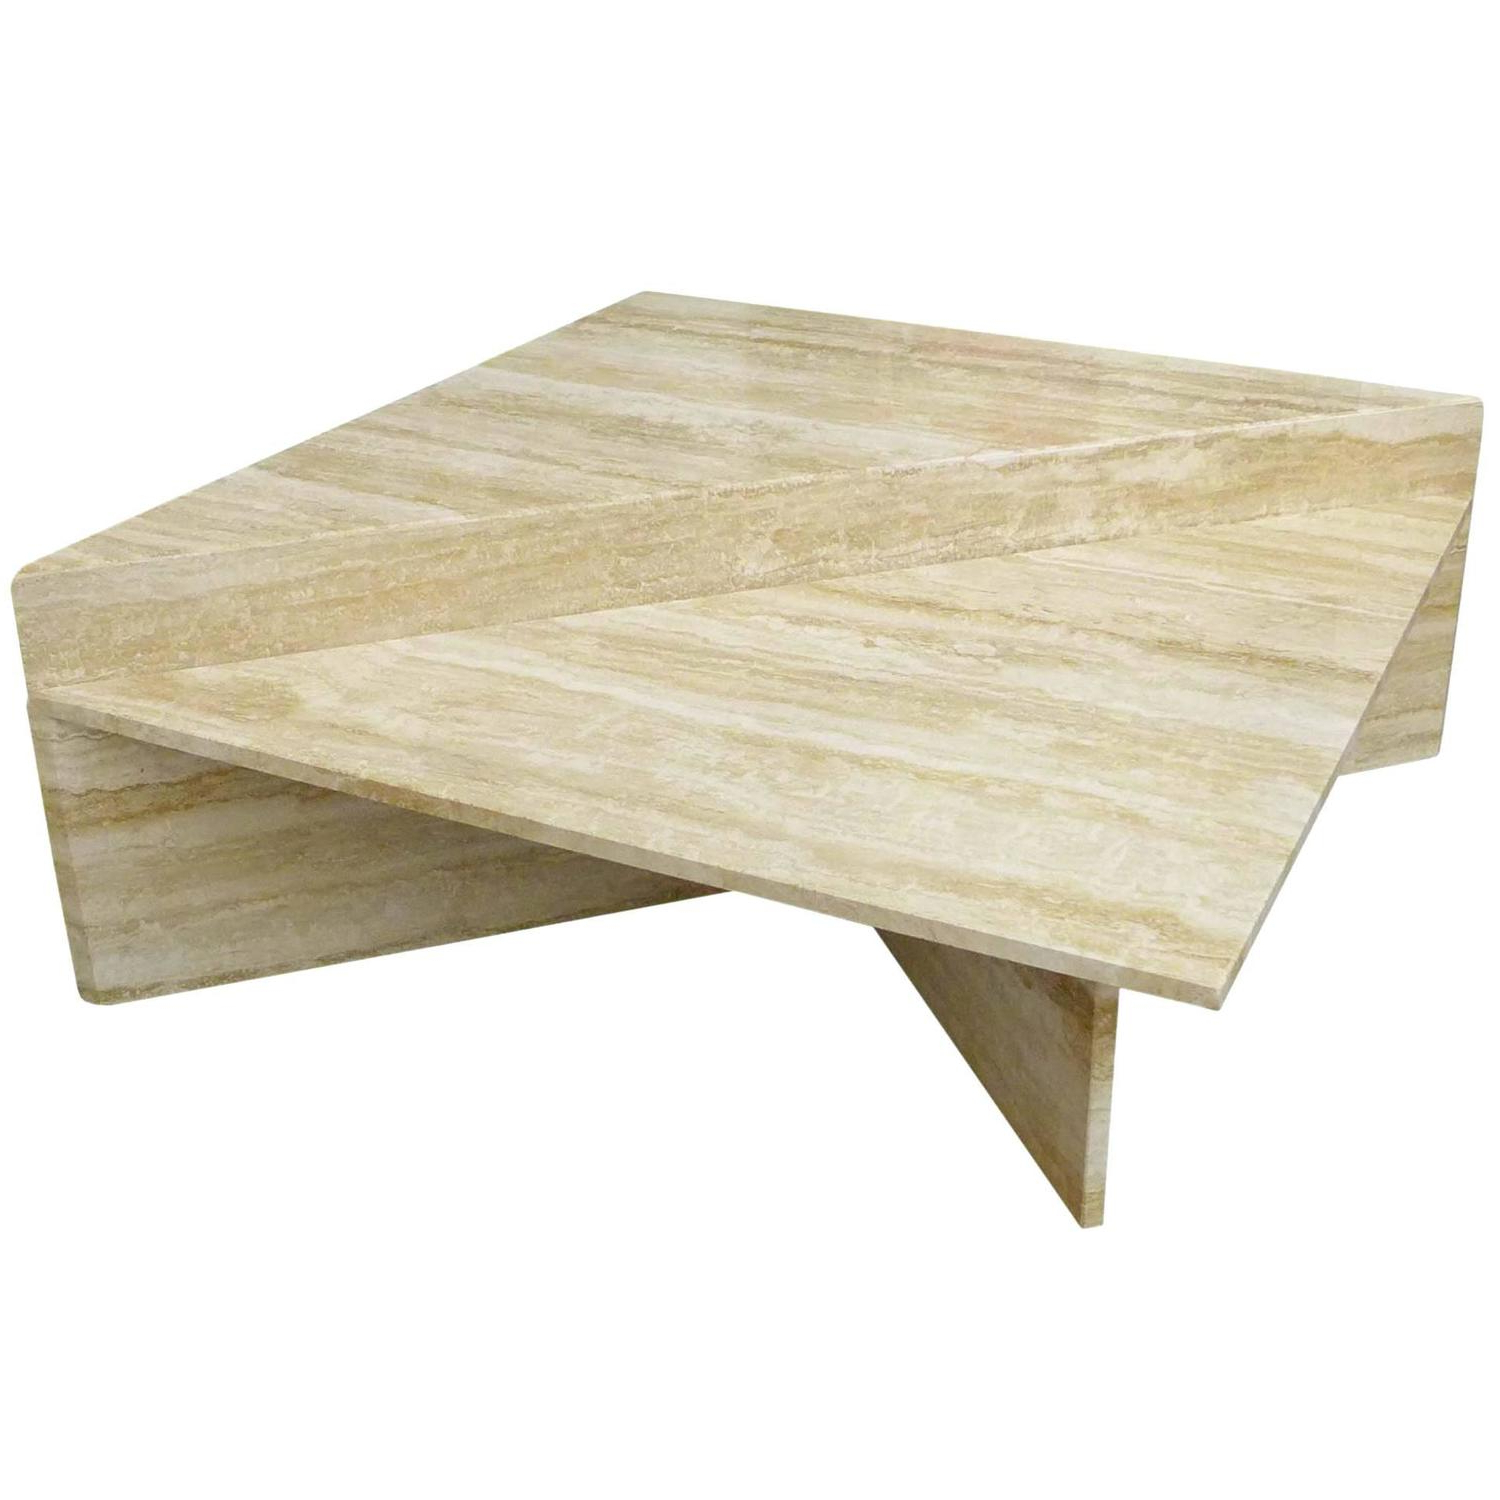 Two Piece Modular Travertine Coffee Table At 1stdibs Pertaining To Most Current Modular Coffee Tables (View 6 of 20)